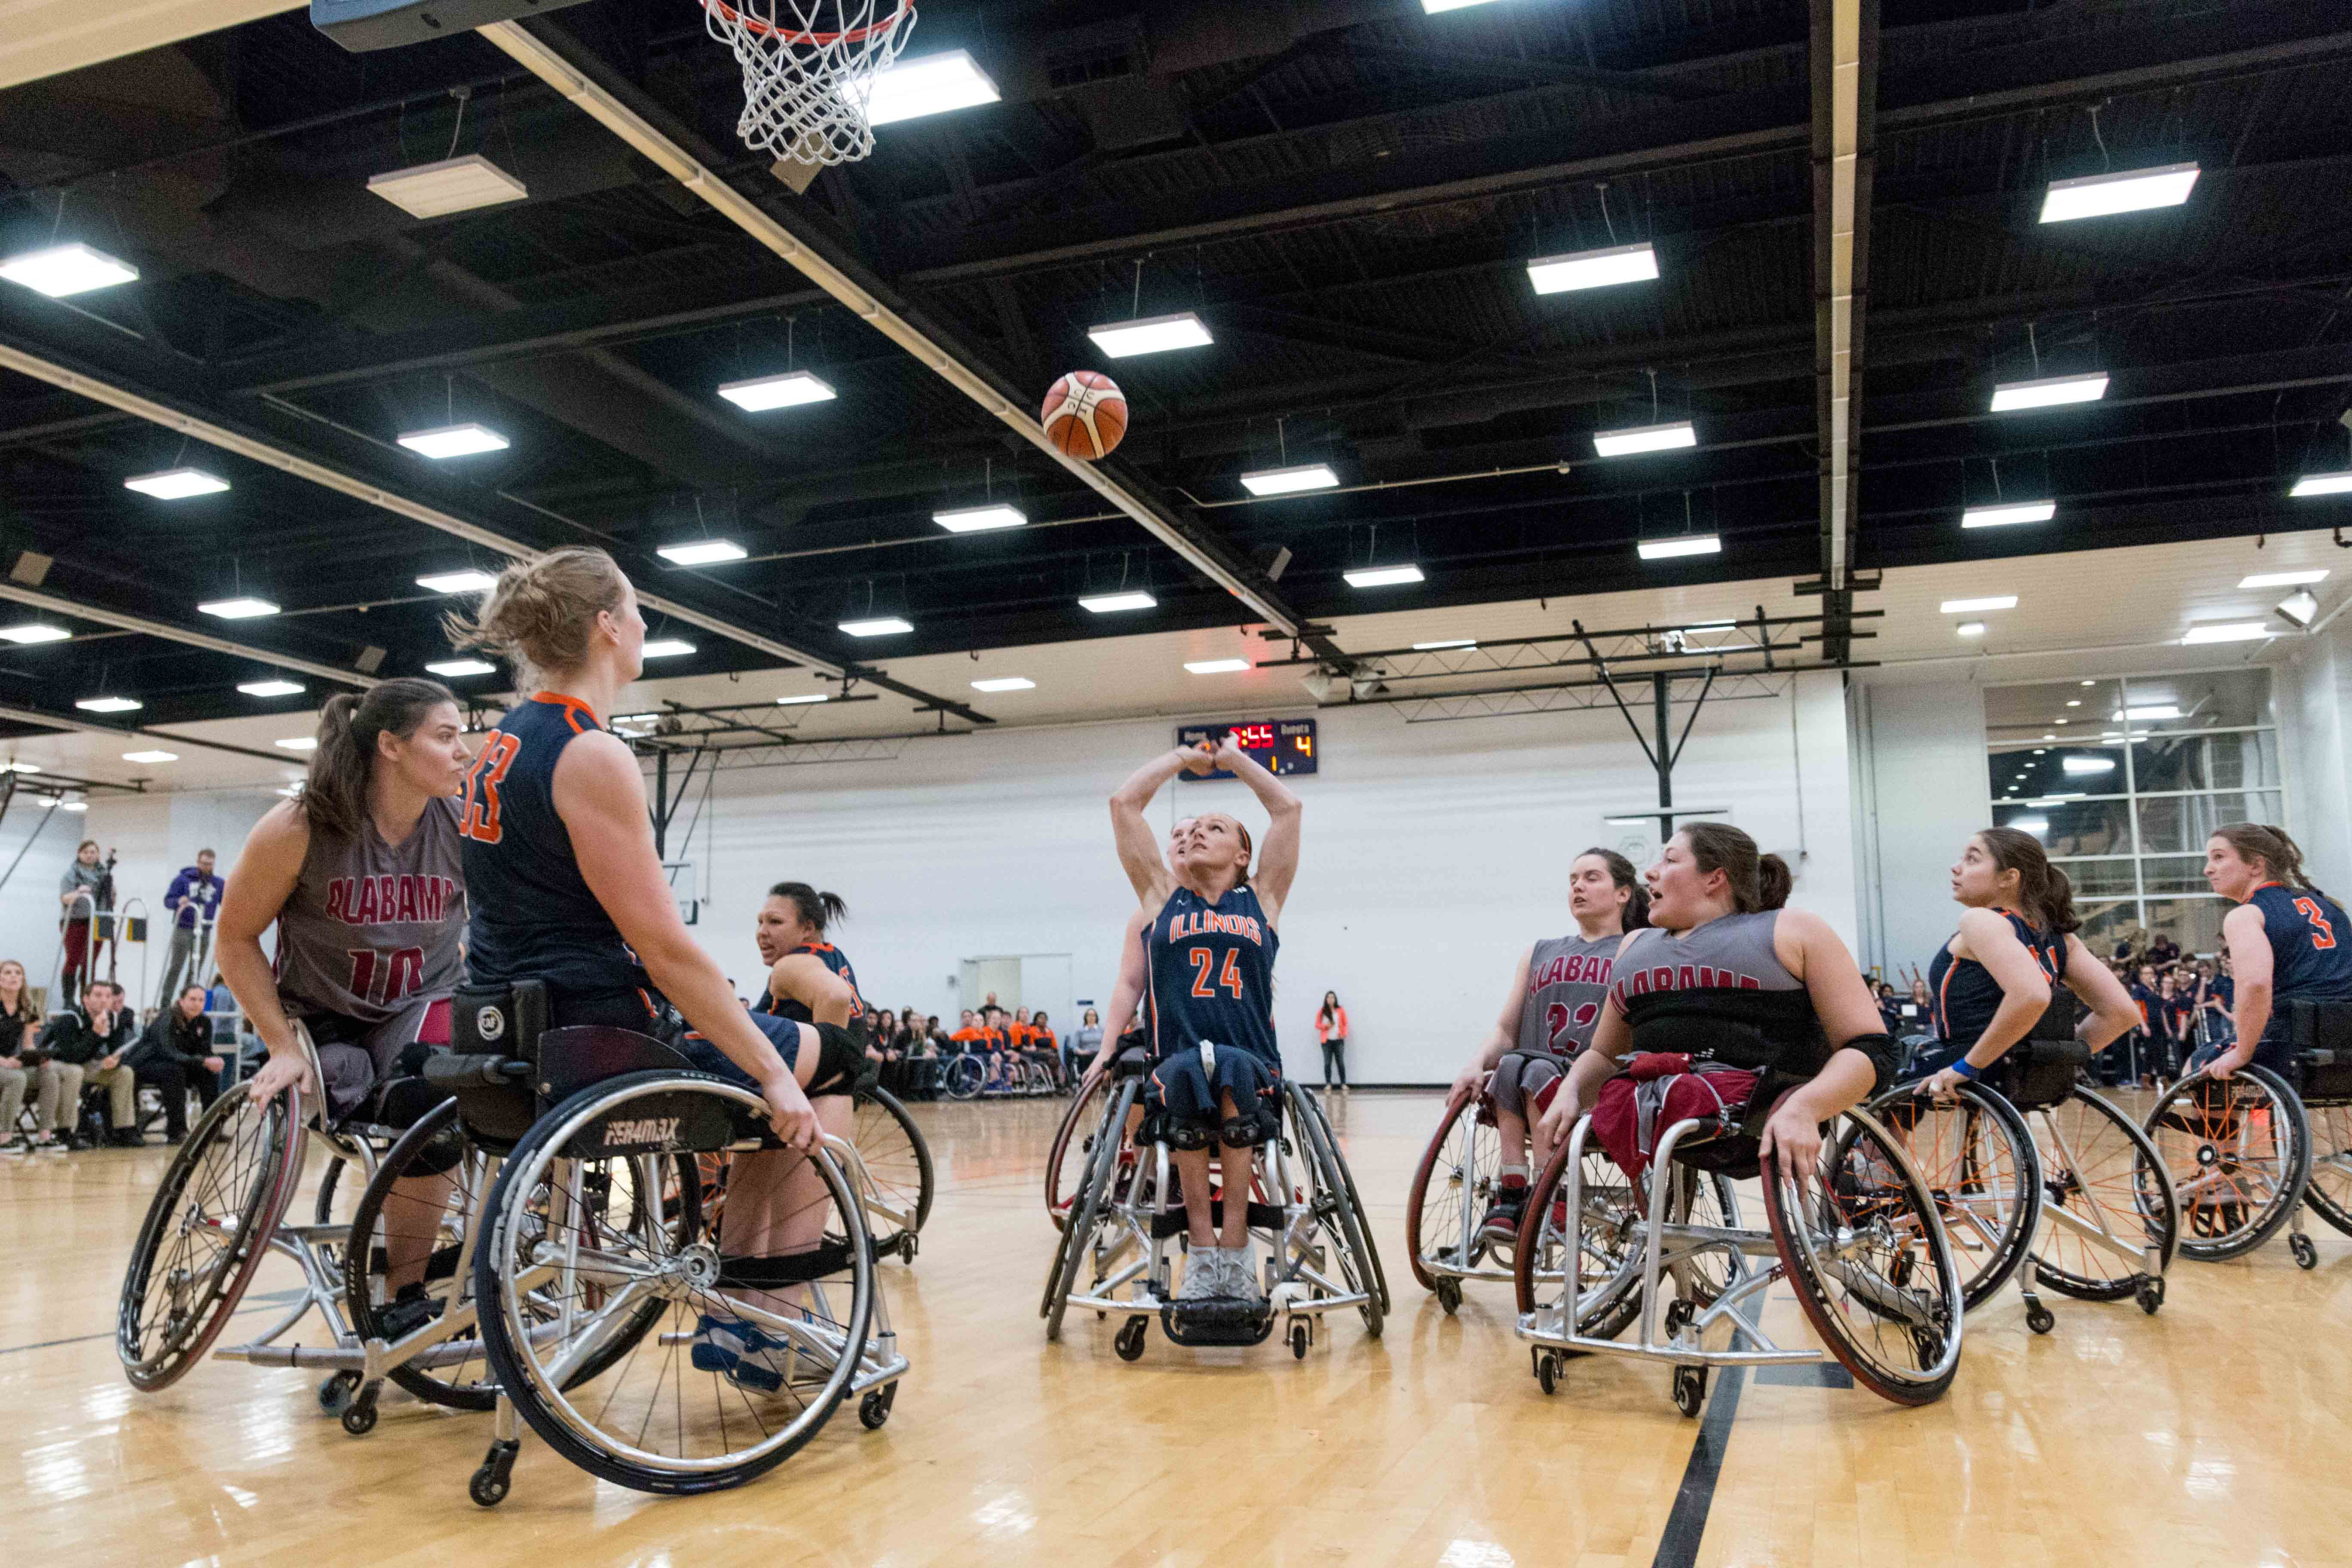 Illinois' Megan Blunk shoots the ball during the game against Alabama at the Activities and Recreation Center on Feb. 12, 2016. The Illini won 56-47.